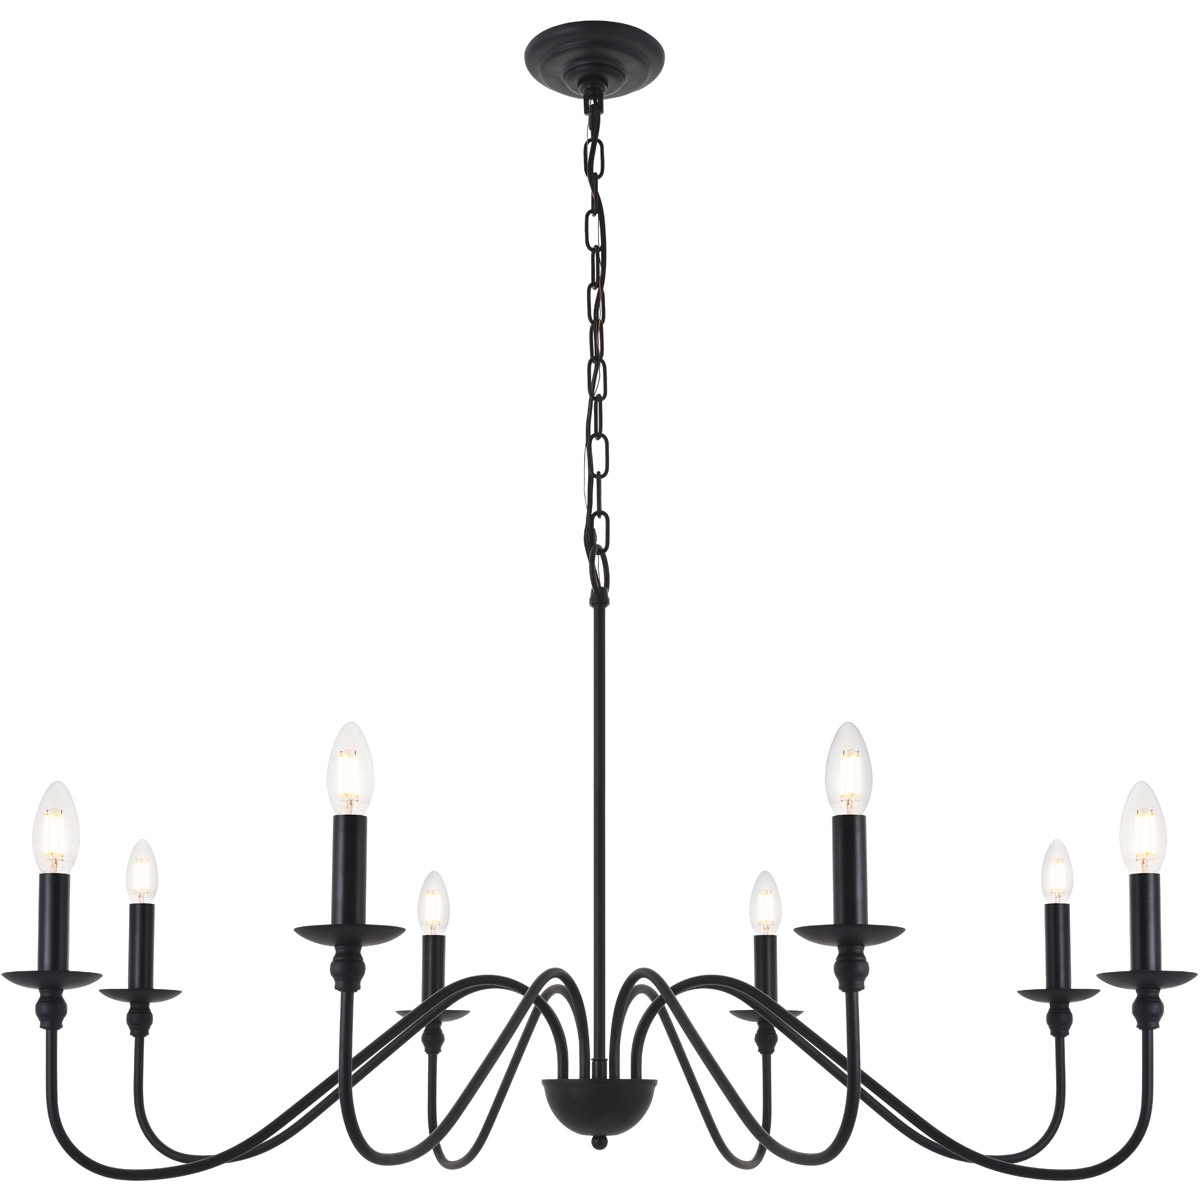 Details About Chandelier Fixture Wrought Iron Country Cottage Dining Room Kitchen 8 Light 42